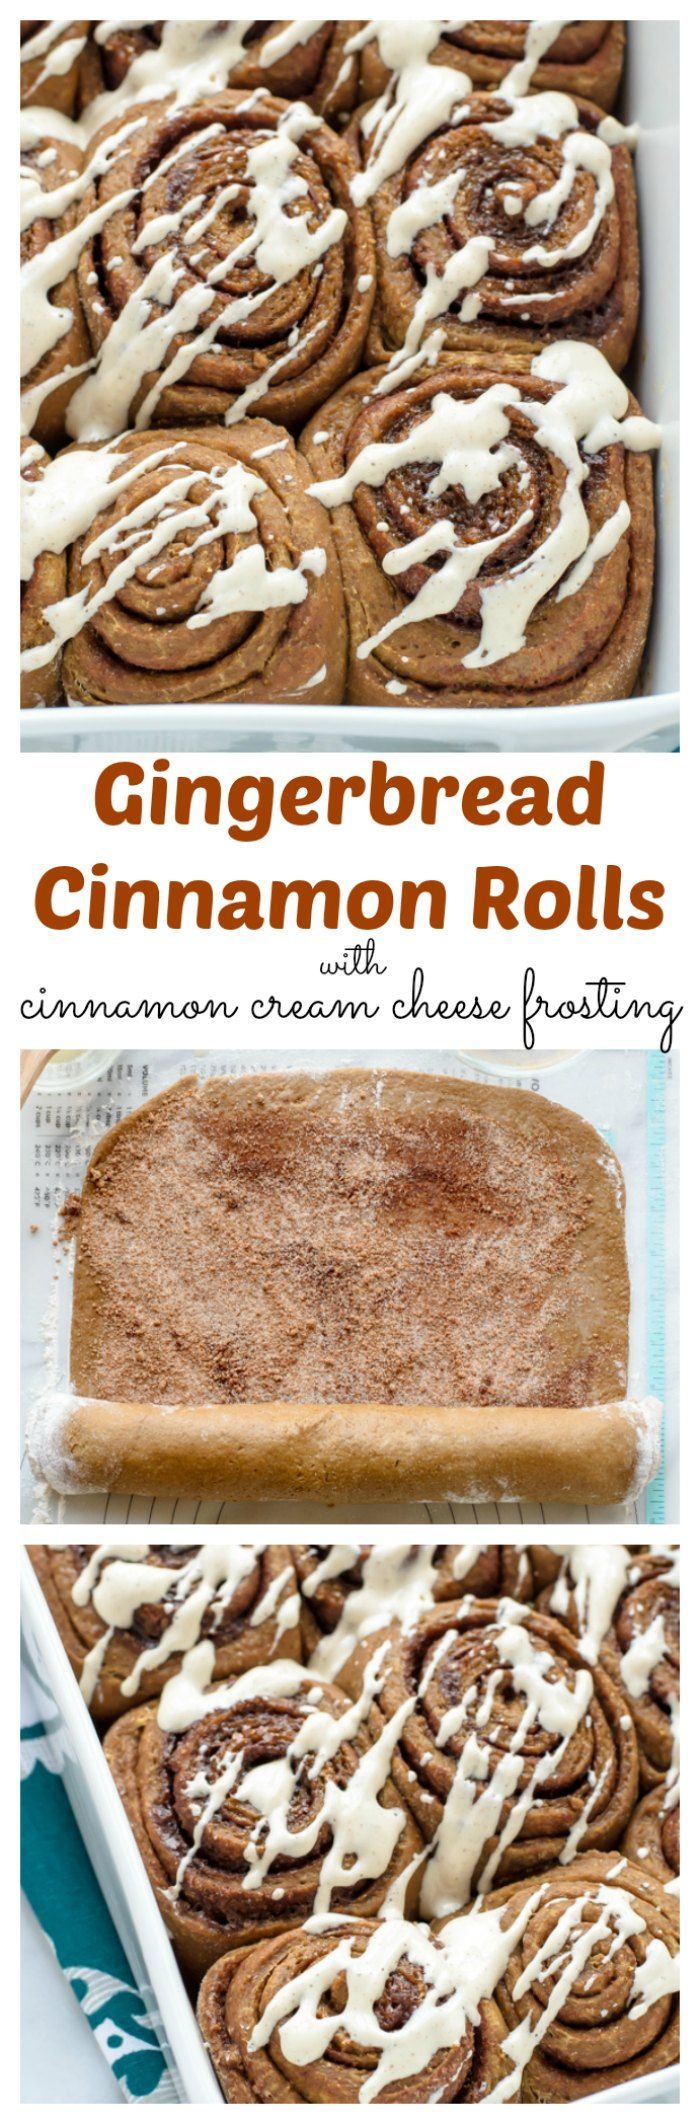 Fluffy, buttery cinnamon rolls that taste just like gingerbread cookies! This recipe can be prepped the night before, so all you need to do in the morning is bake. Perfect for holiday breakfast and brunch.